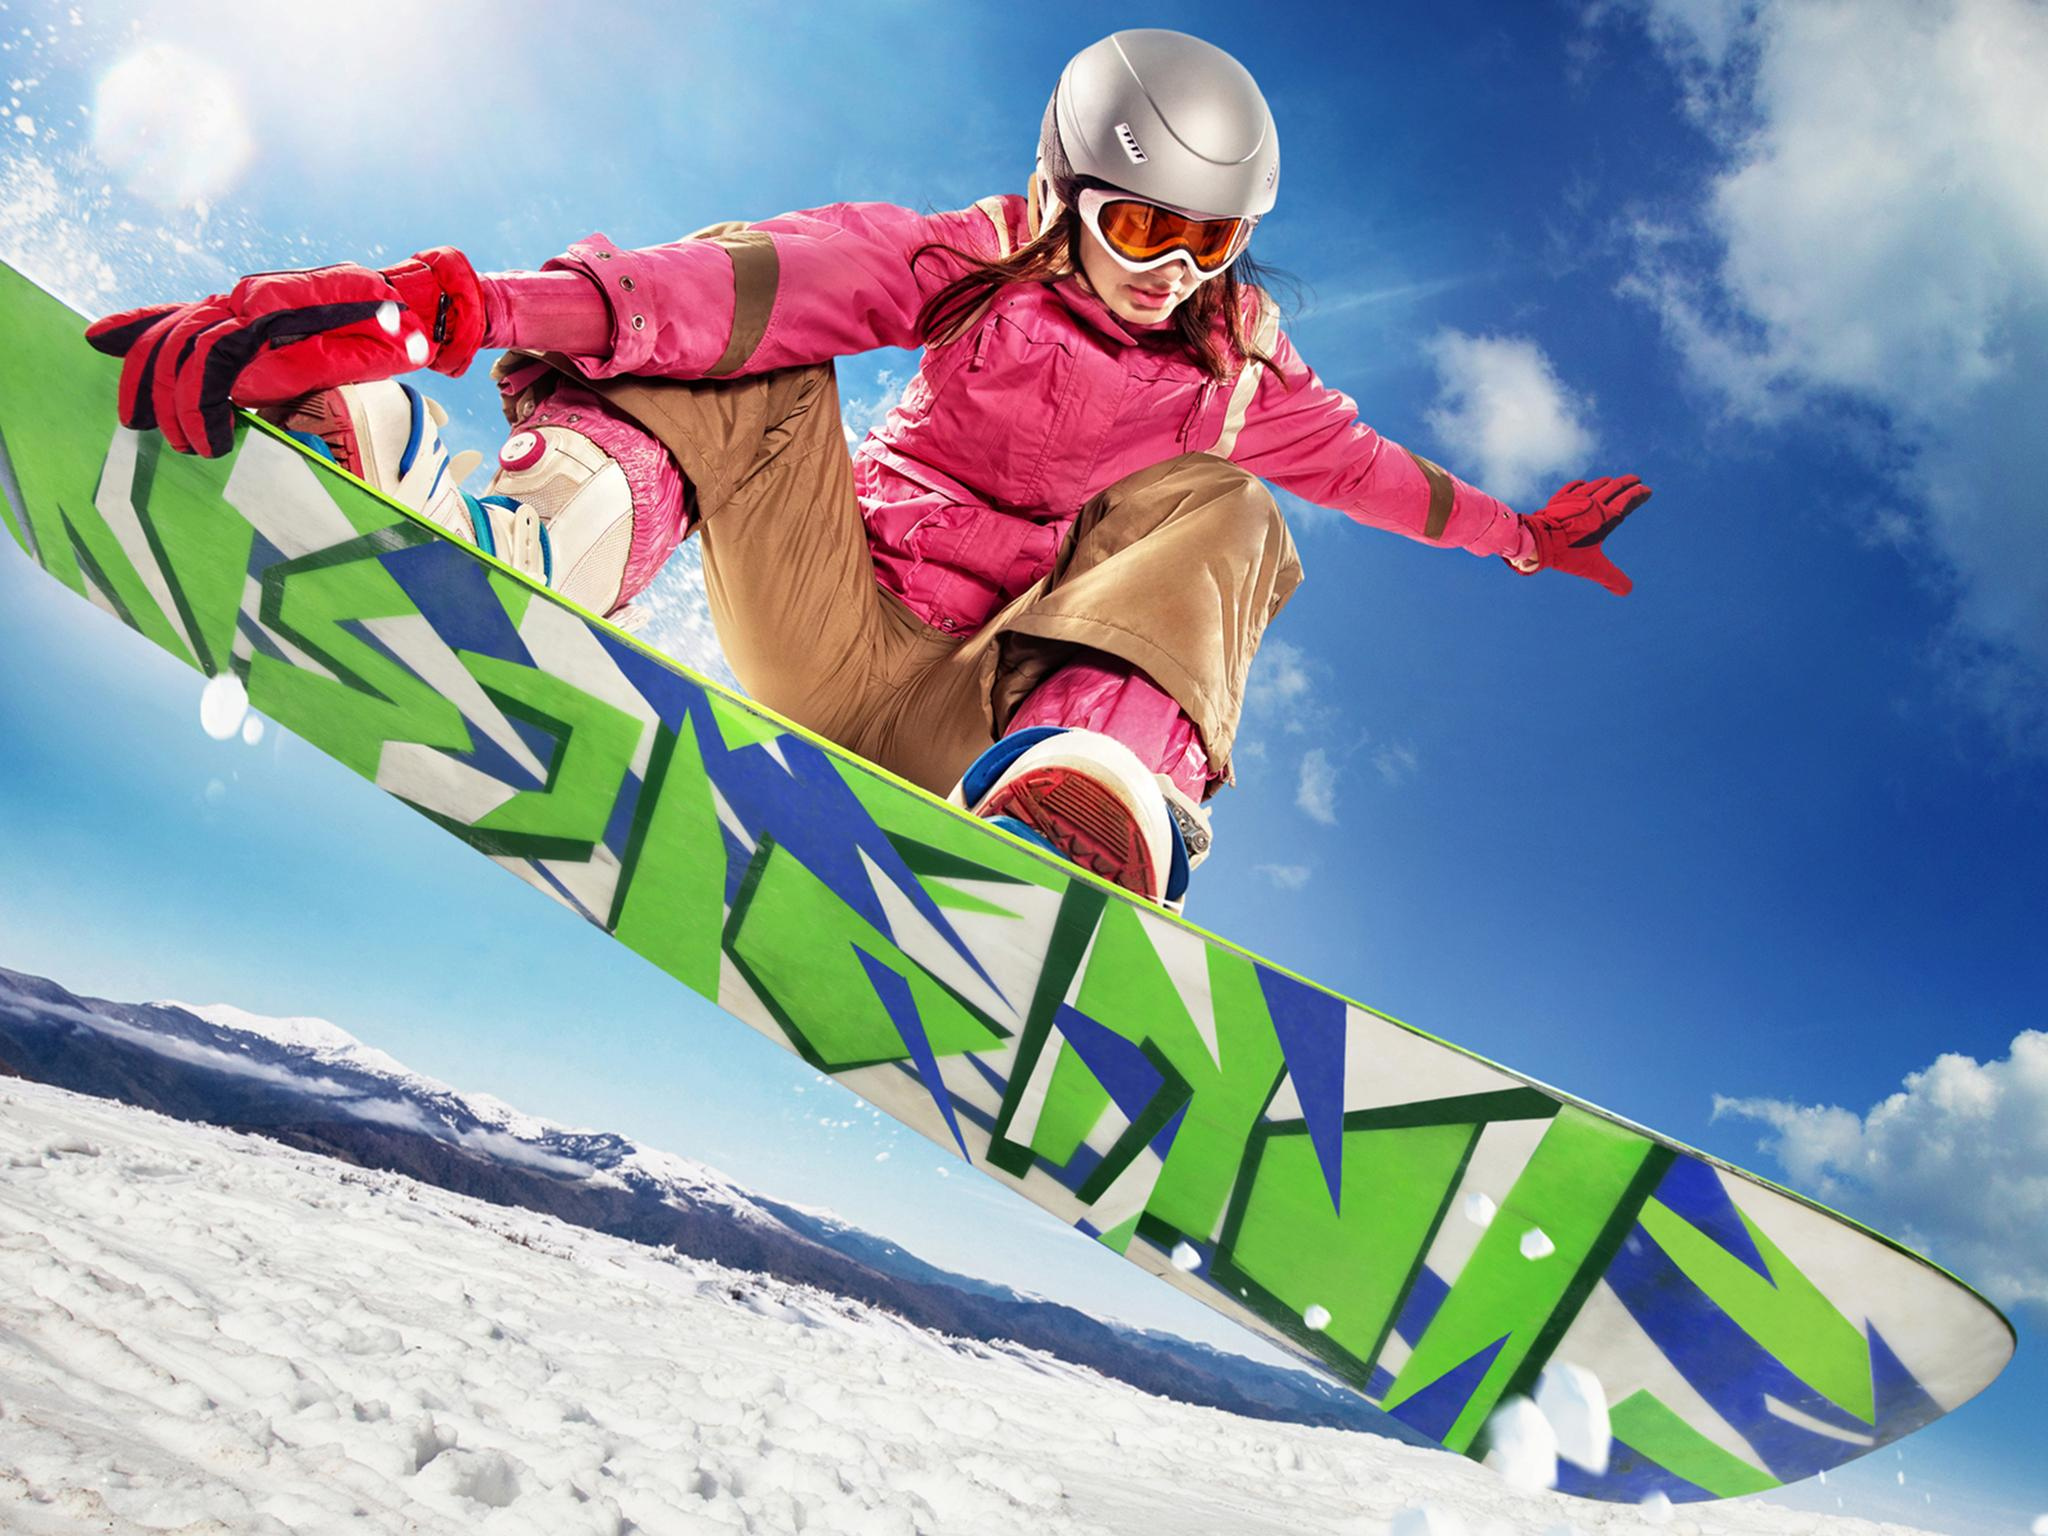 10 best snowboards for 20182019 | The Independent